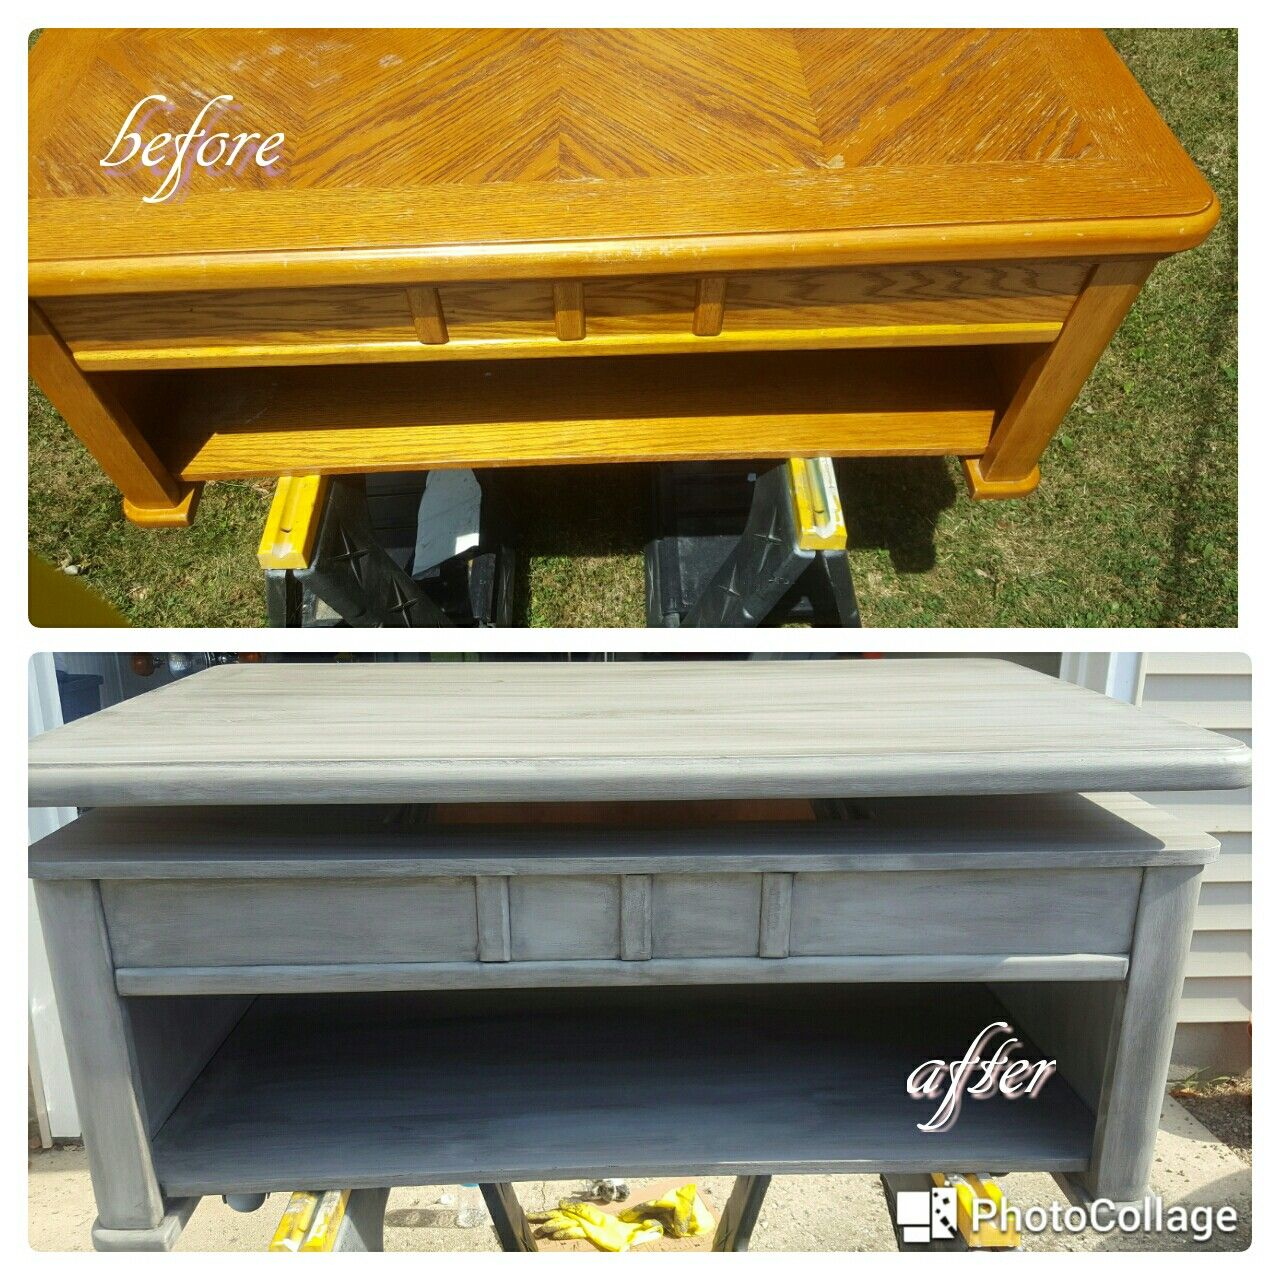 Lift Top Coffee Table Refurbished With Windsor Gray Chalk Paint And Valspar Antiquing Glaze Refurbished Coffee Tables Coffee Table Refinish Cheap Coffee Table